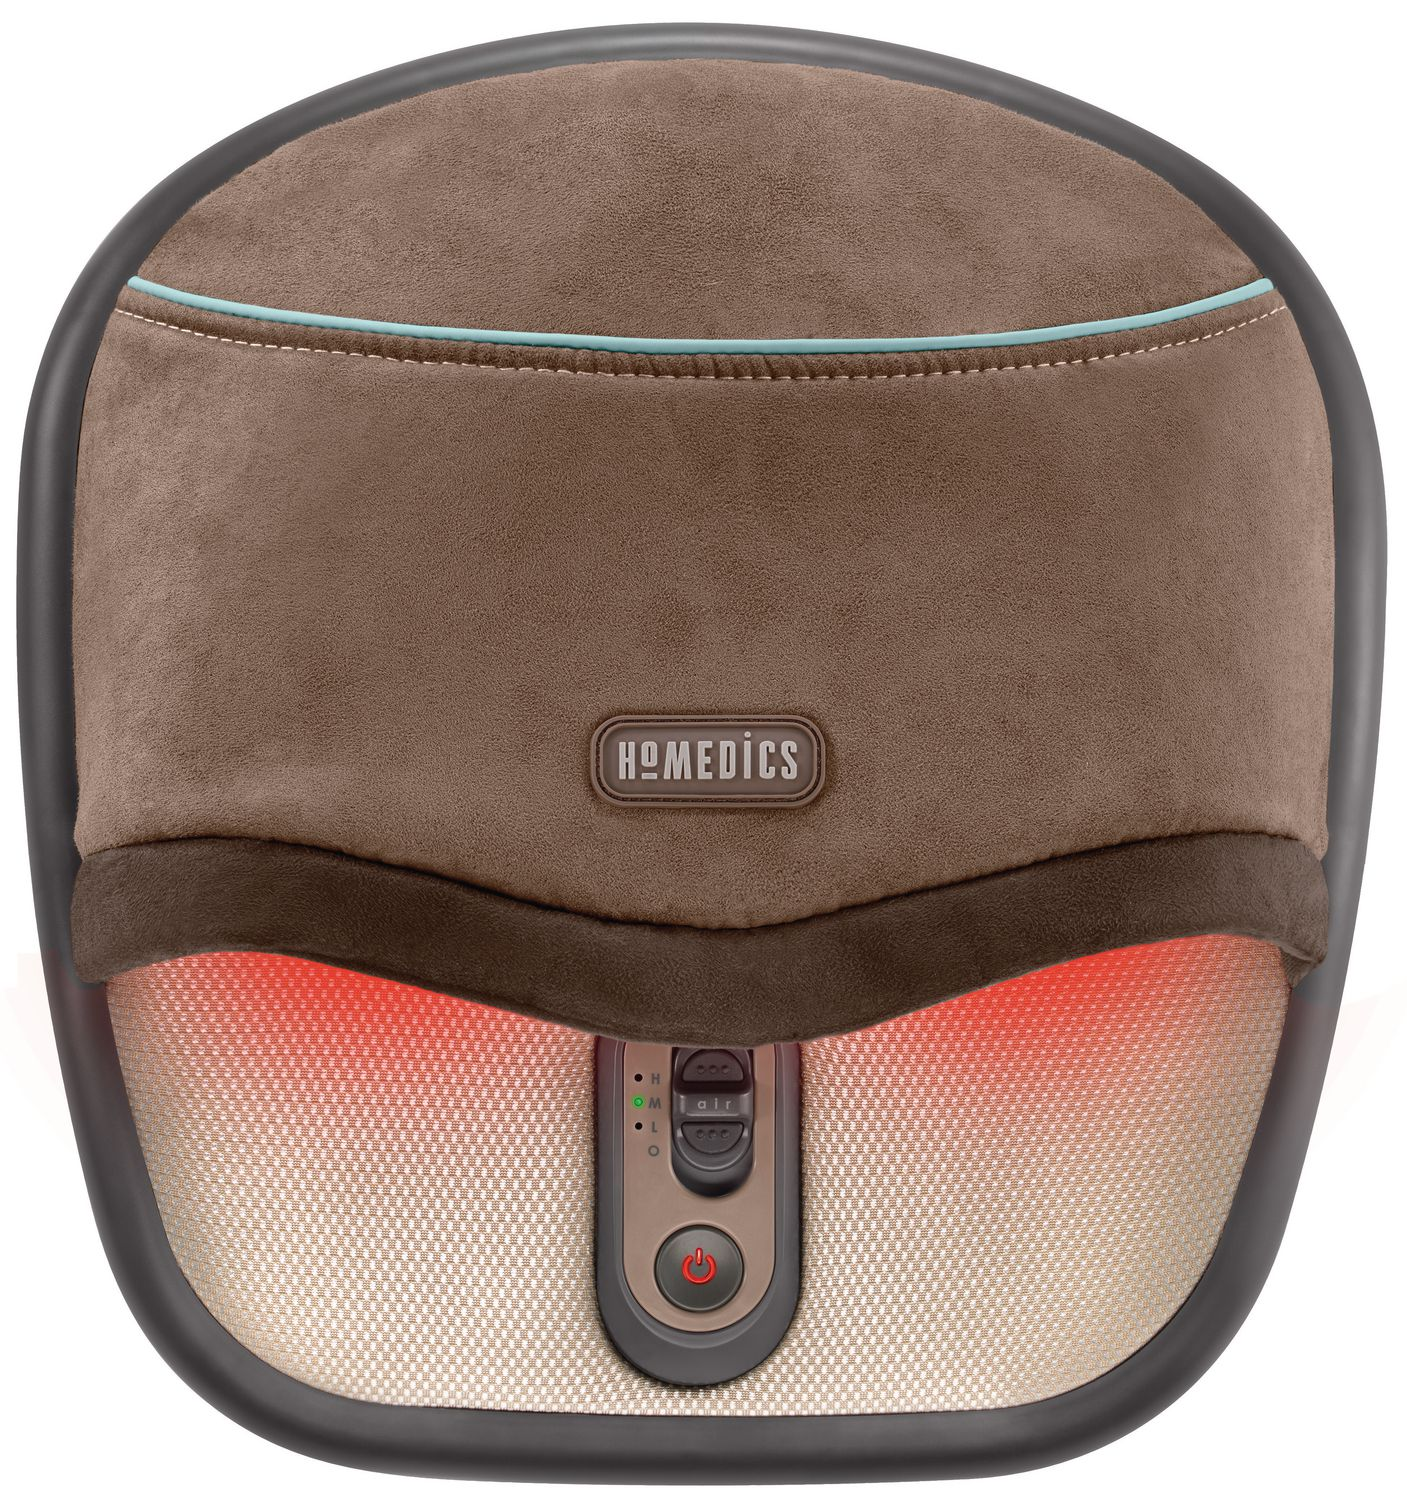 HoMedics Air pression Shiatsu Foot Massager with Heat